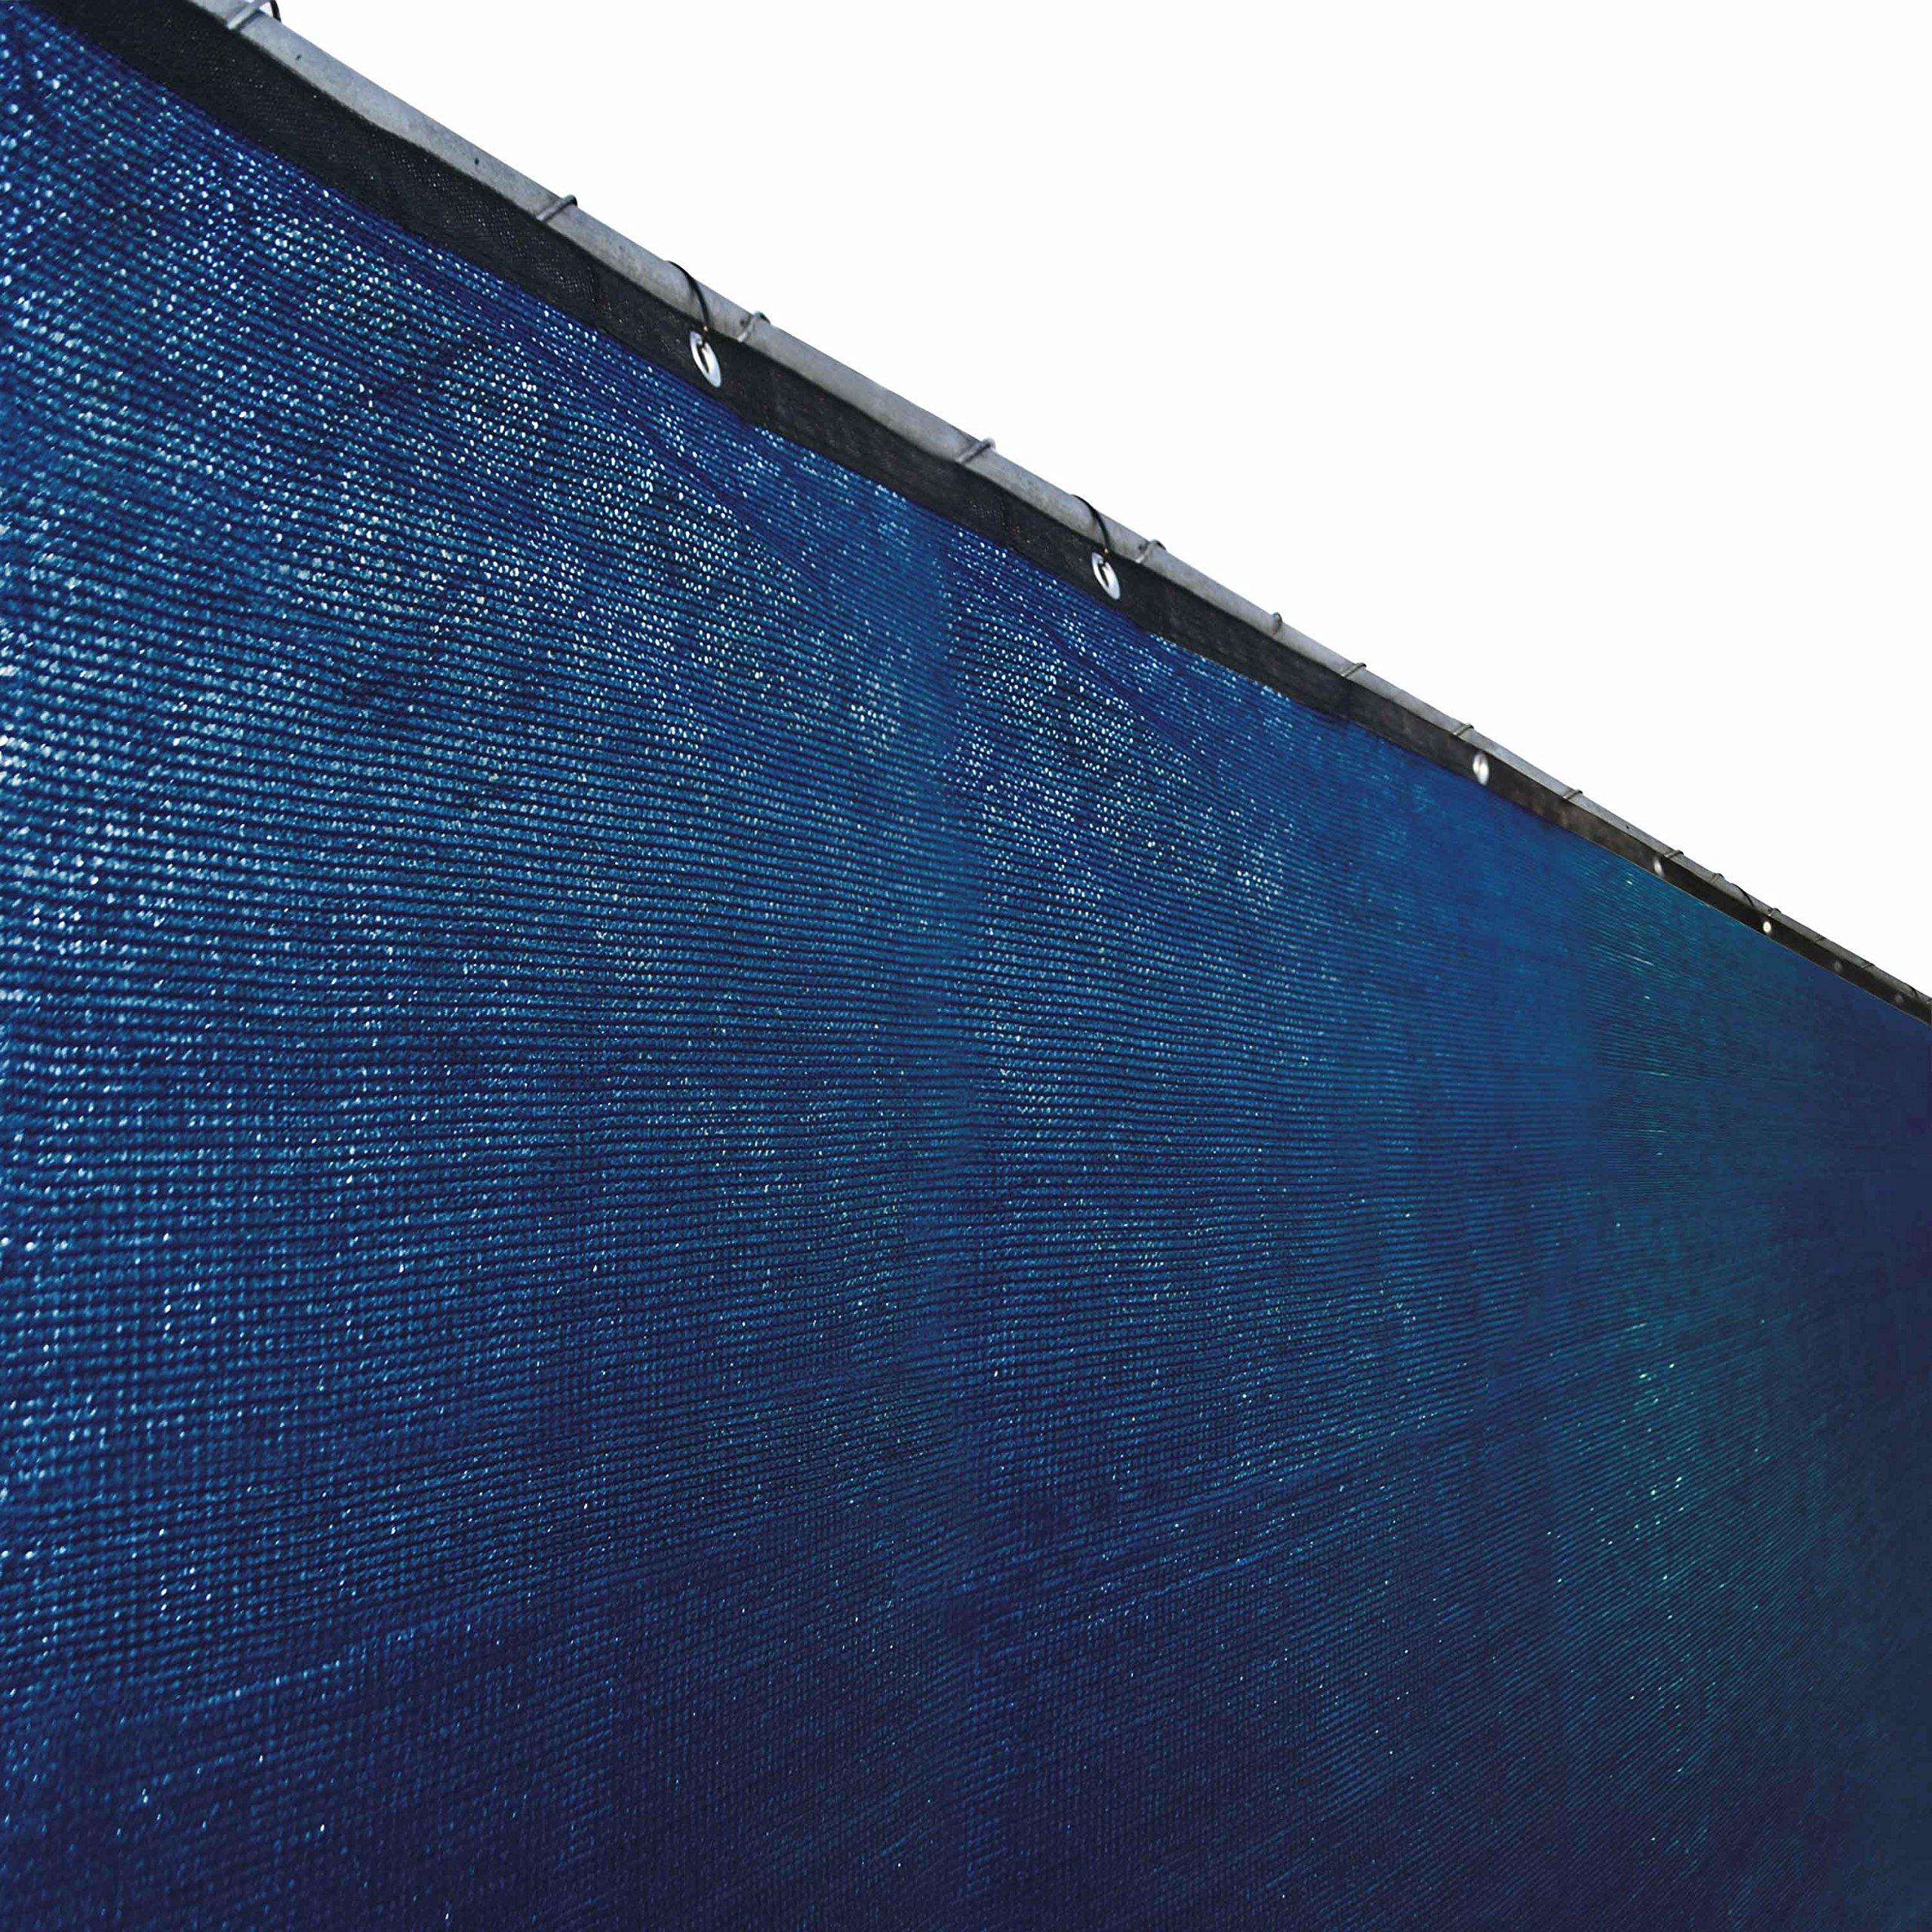 ALEKO 6 x 150 Feet Blue Fence Privacy Screen Outdoor Backyard Fencing Privacy Windscreen Shade Cover Mesh Fabric With Grommets by ALEKO